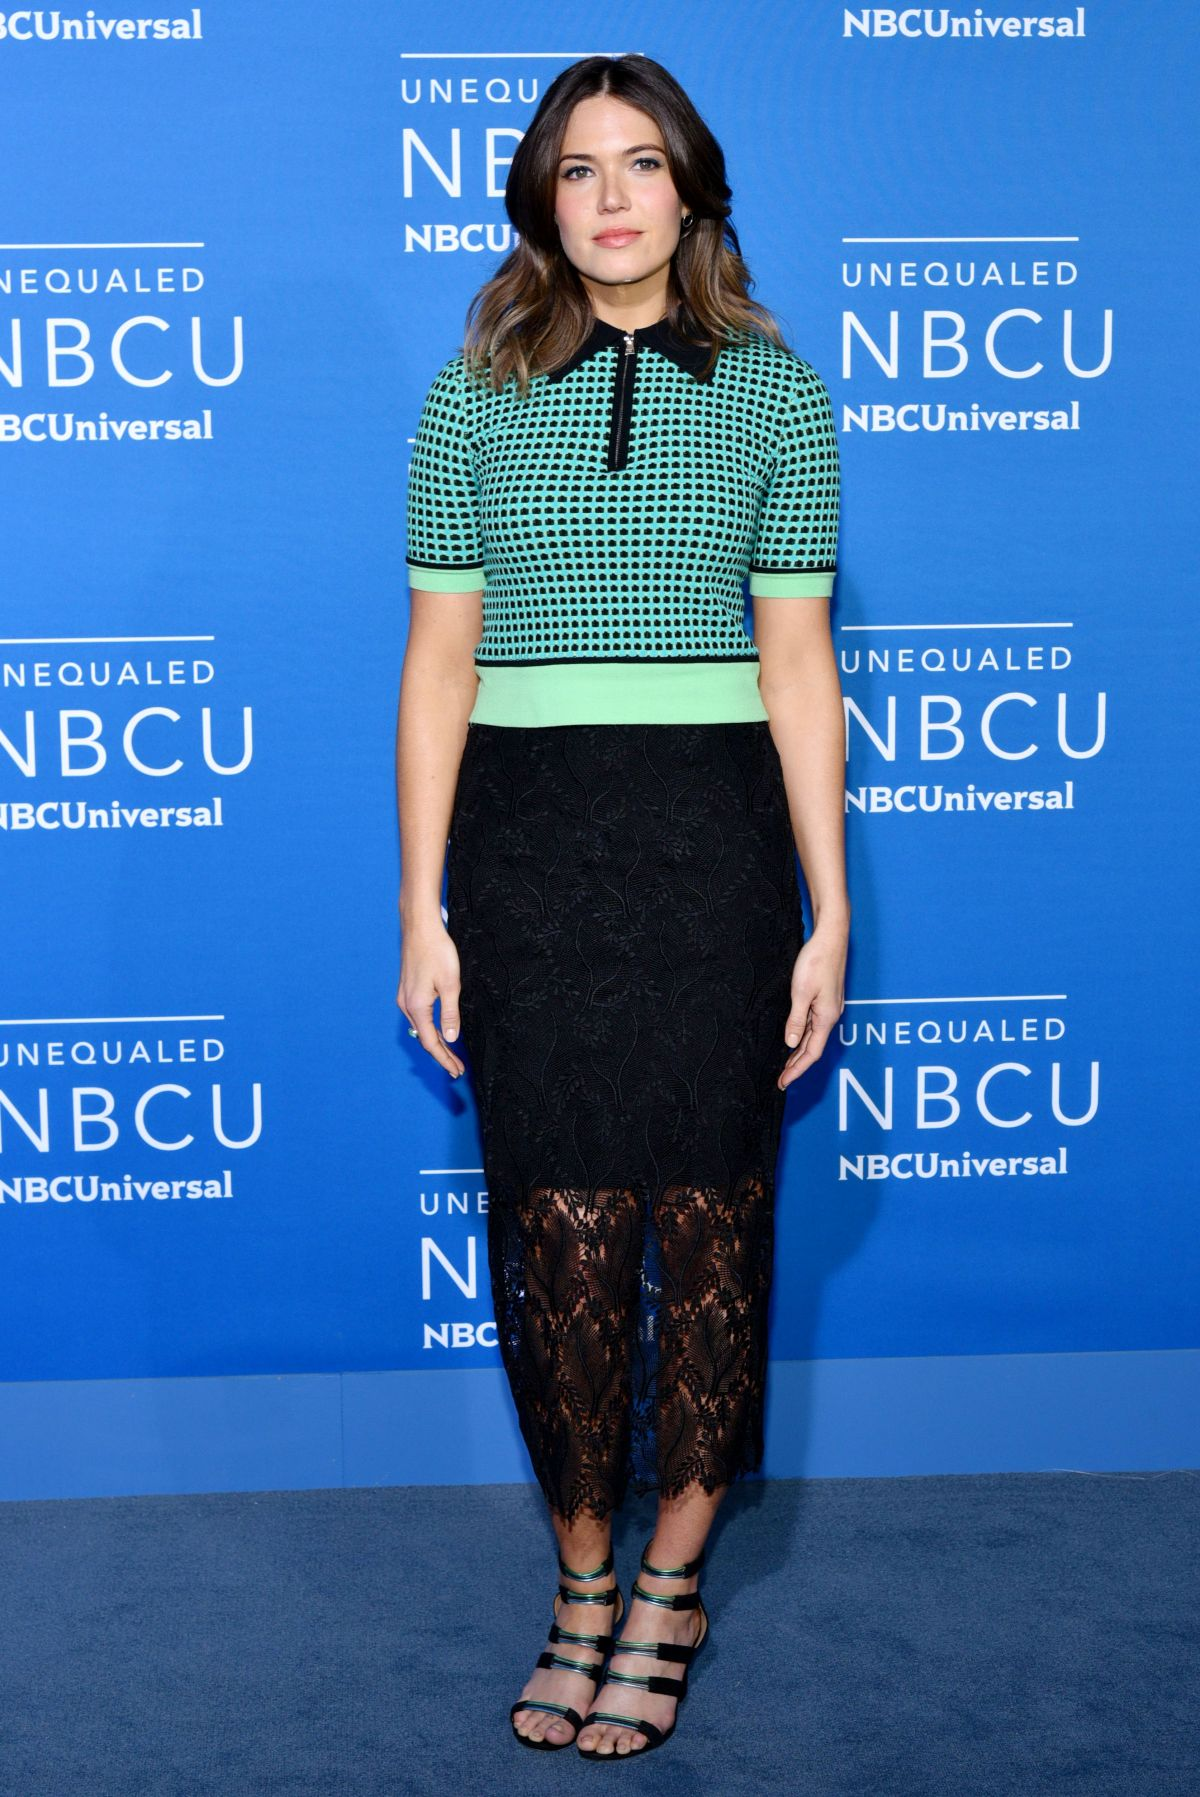 Mandy Moore At NBCUniversal Upfront in New York City   mandy-moore-at-nbcuniversal-upfront-in-new-york-city_2